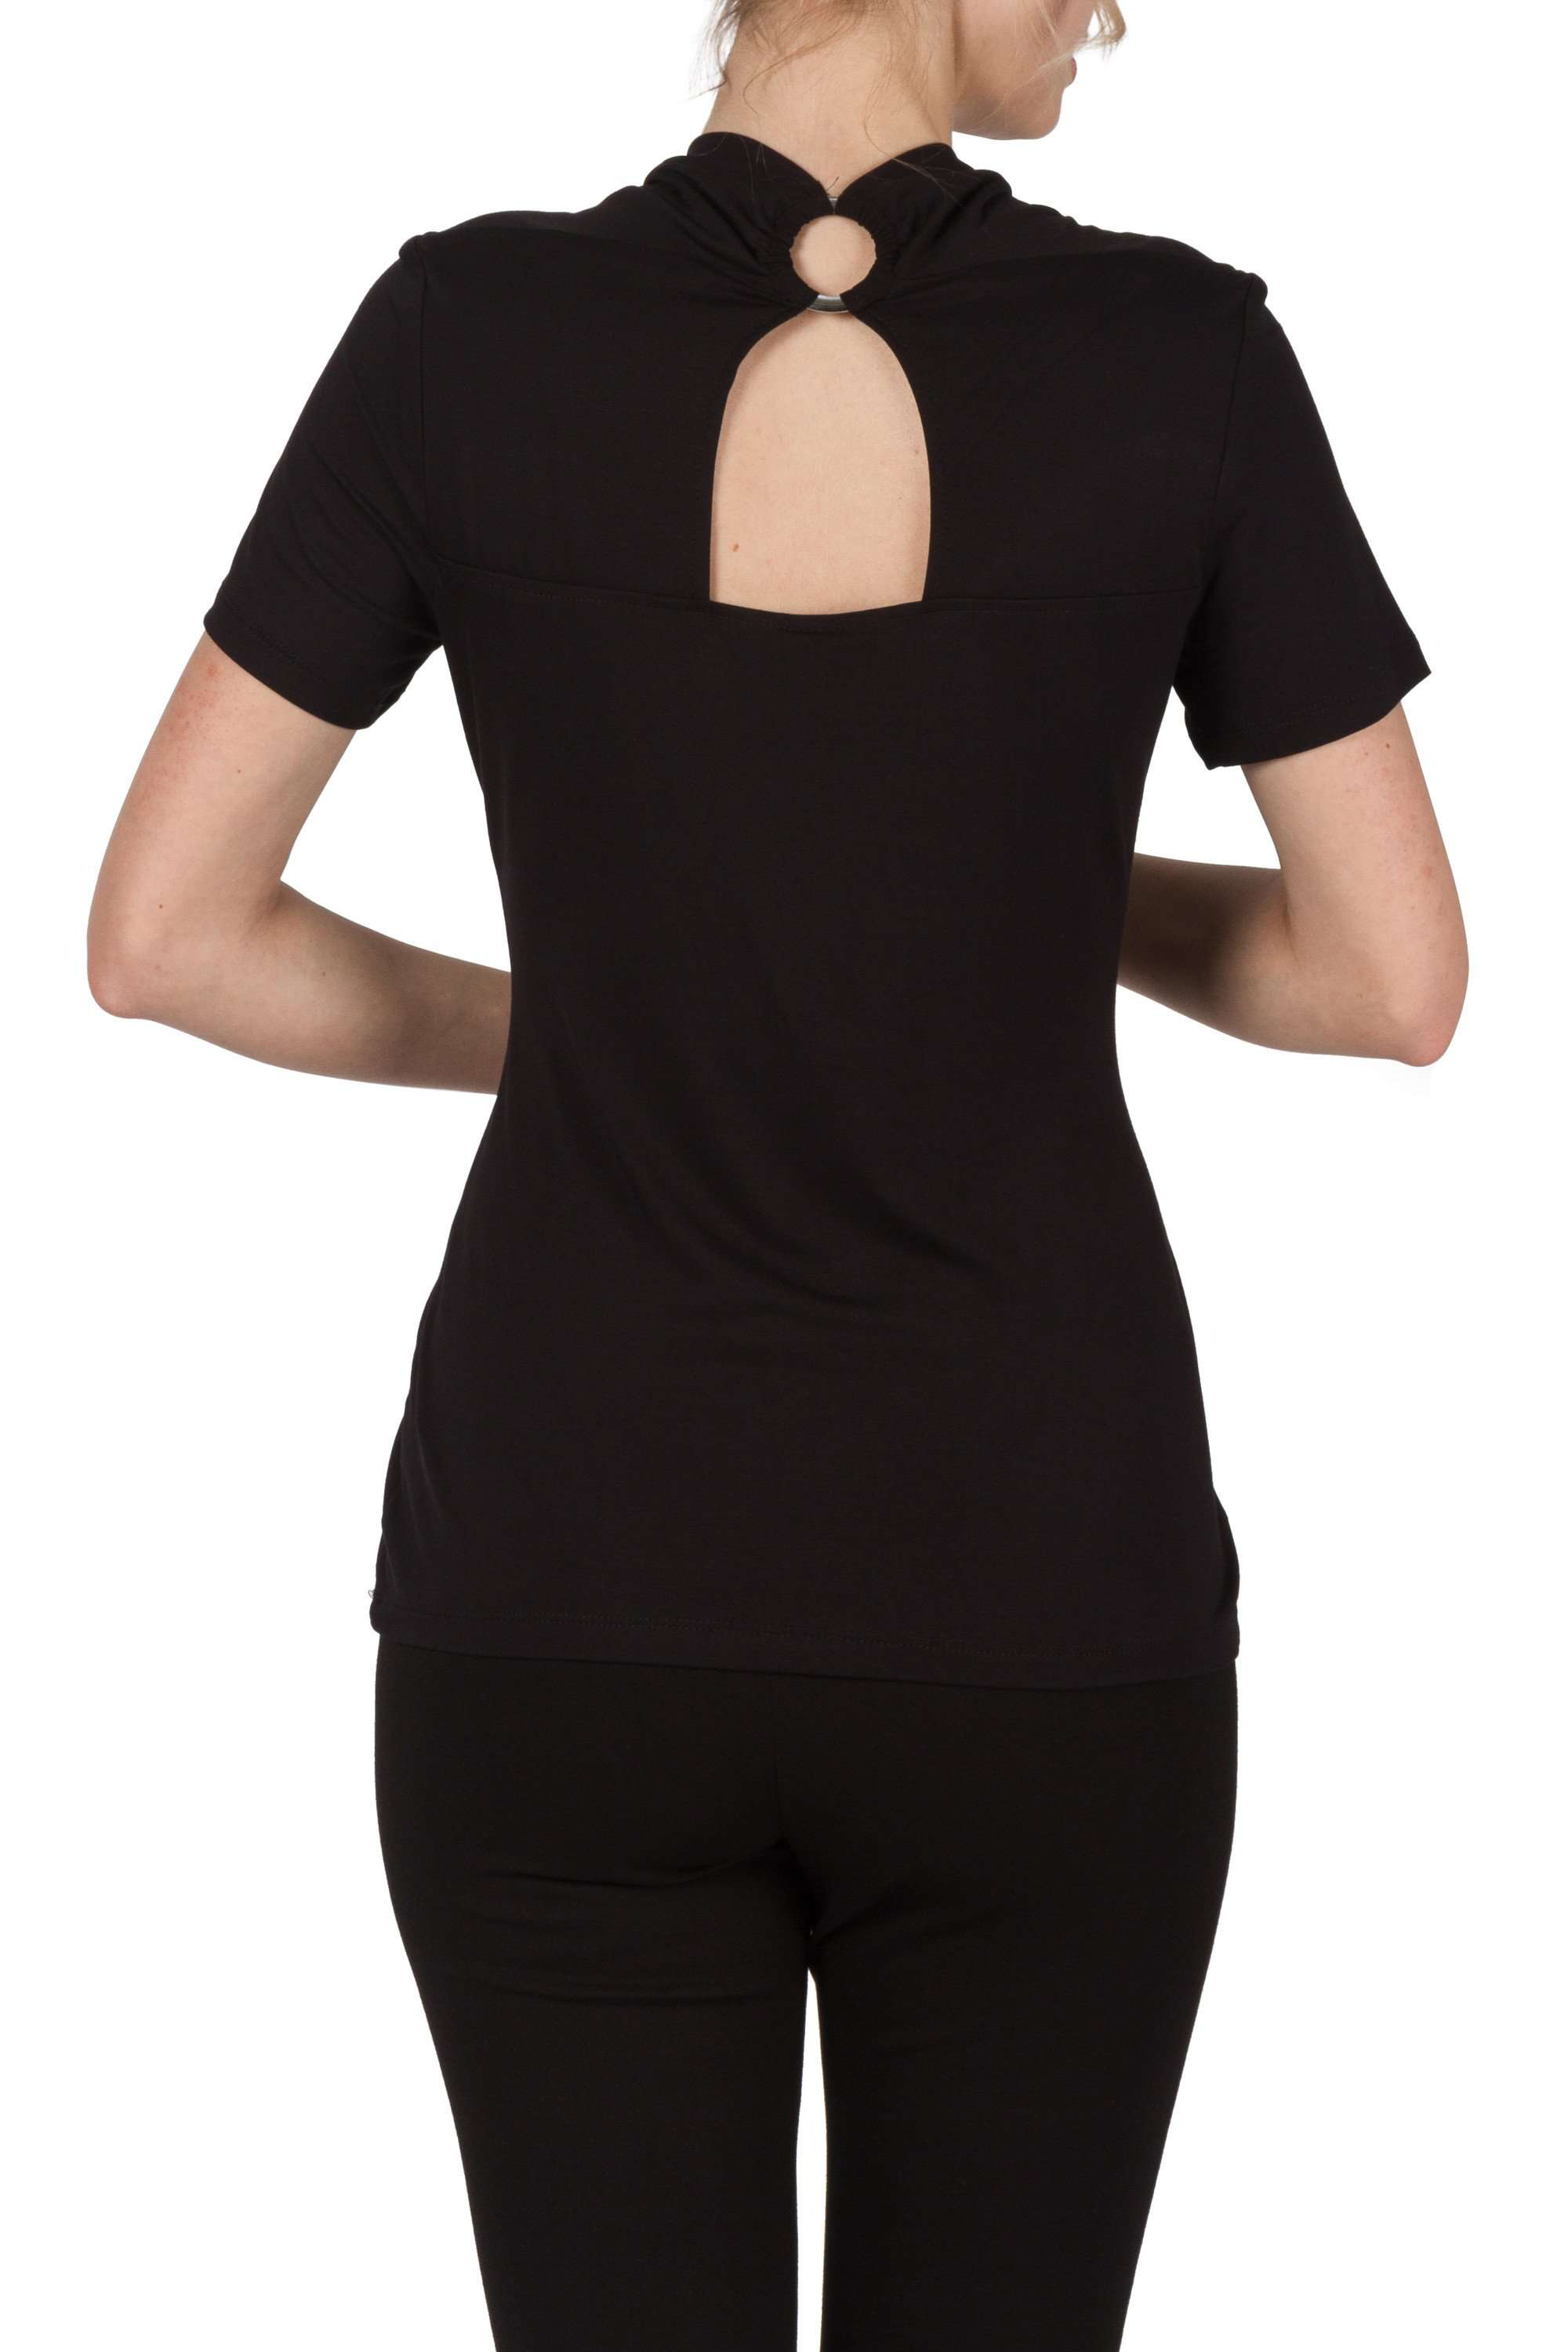 Black Short Sleeve Top on Sale Made in Canada - Yvonne Marie - Yvonne Marie